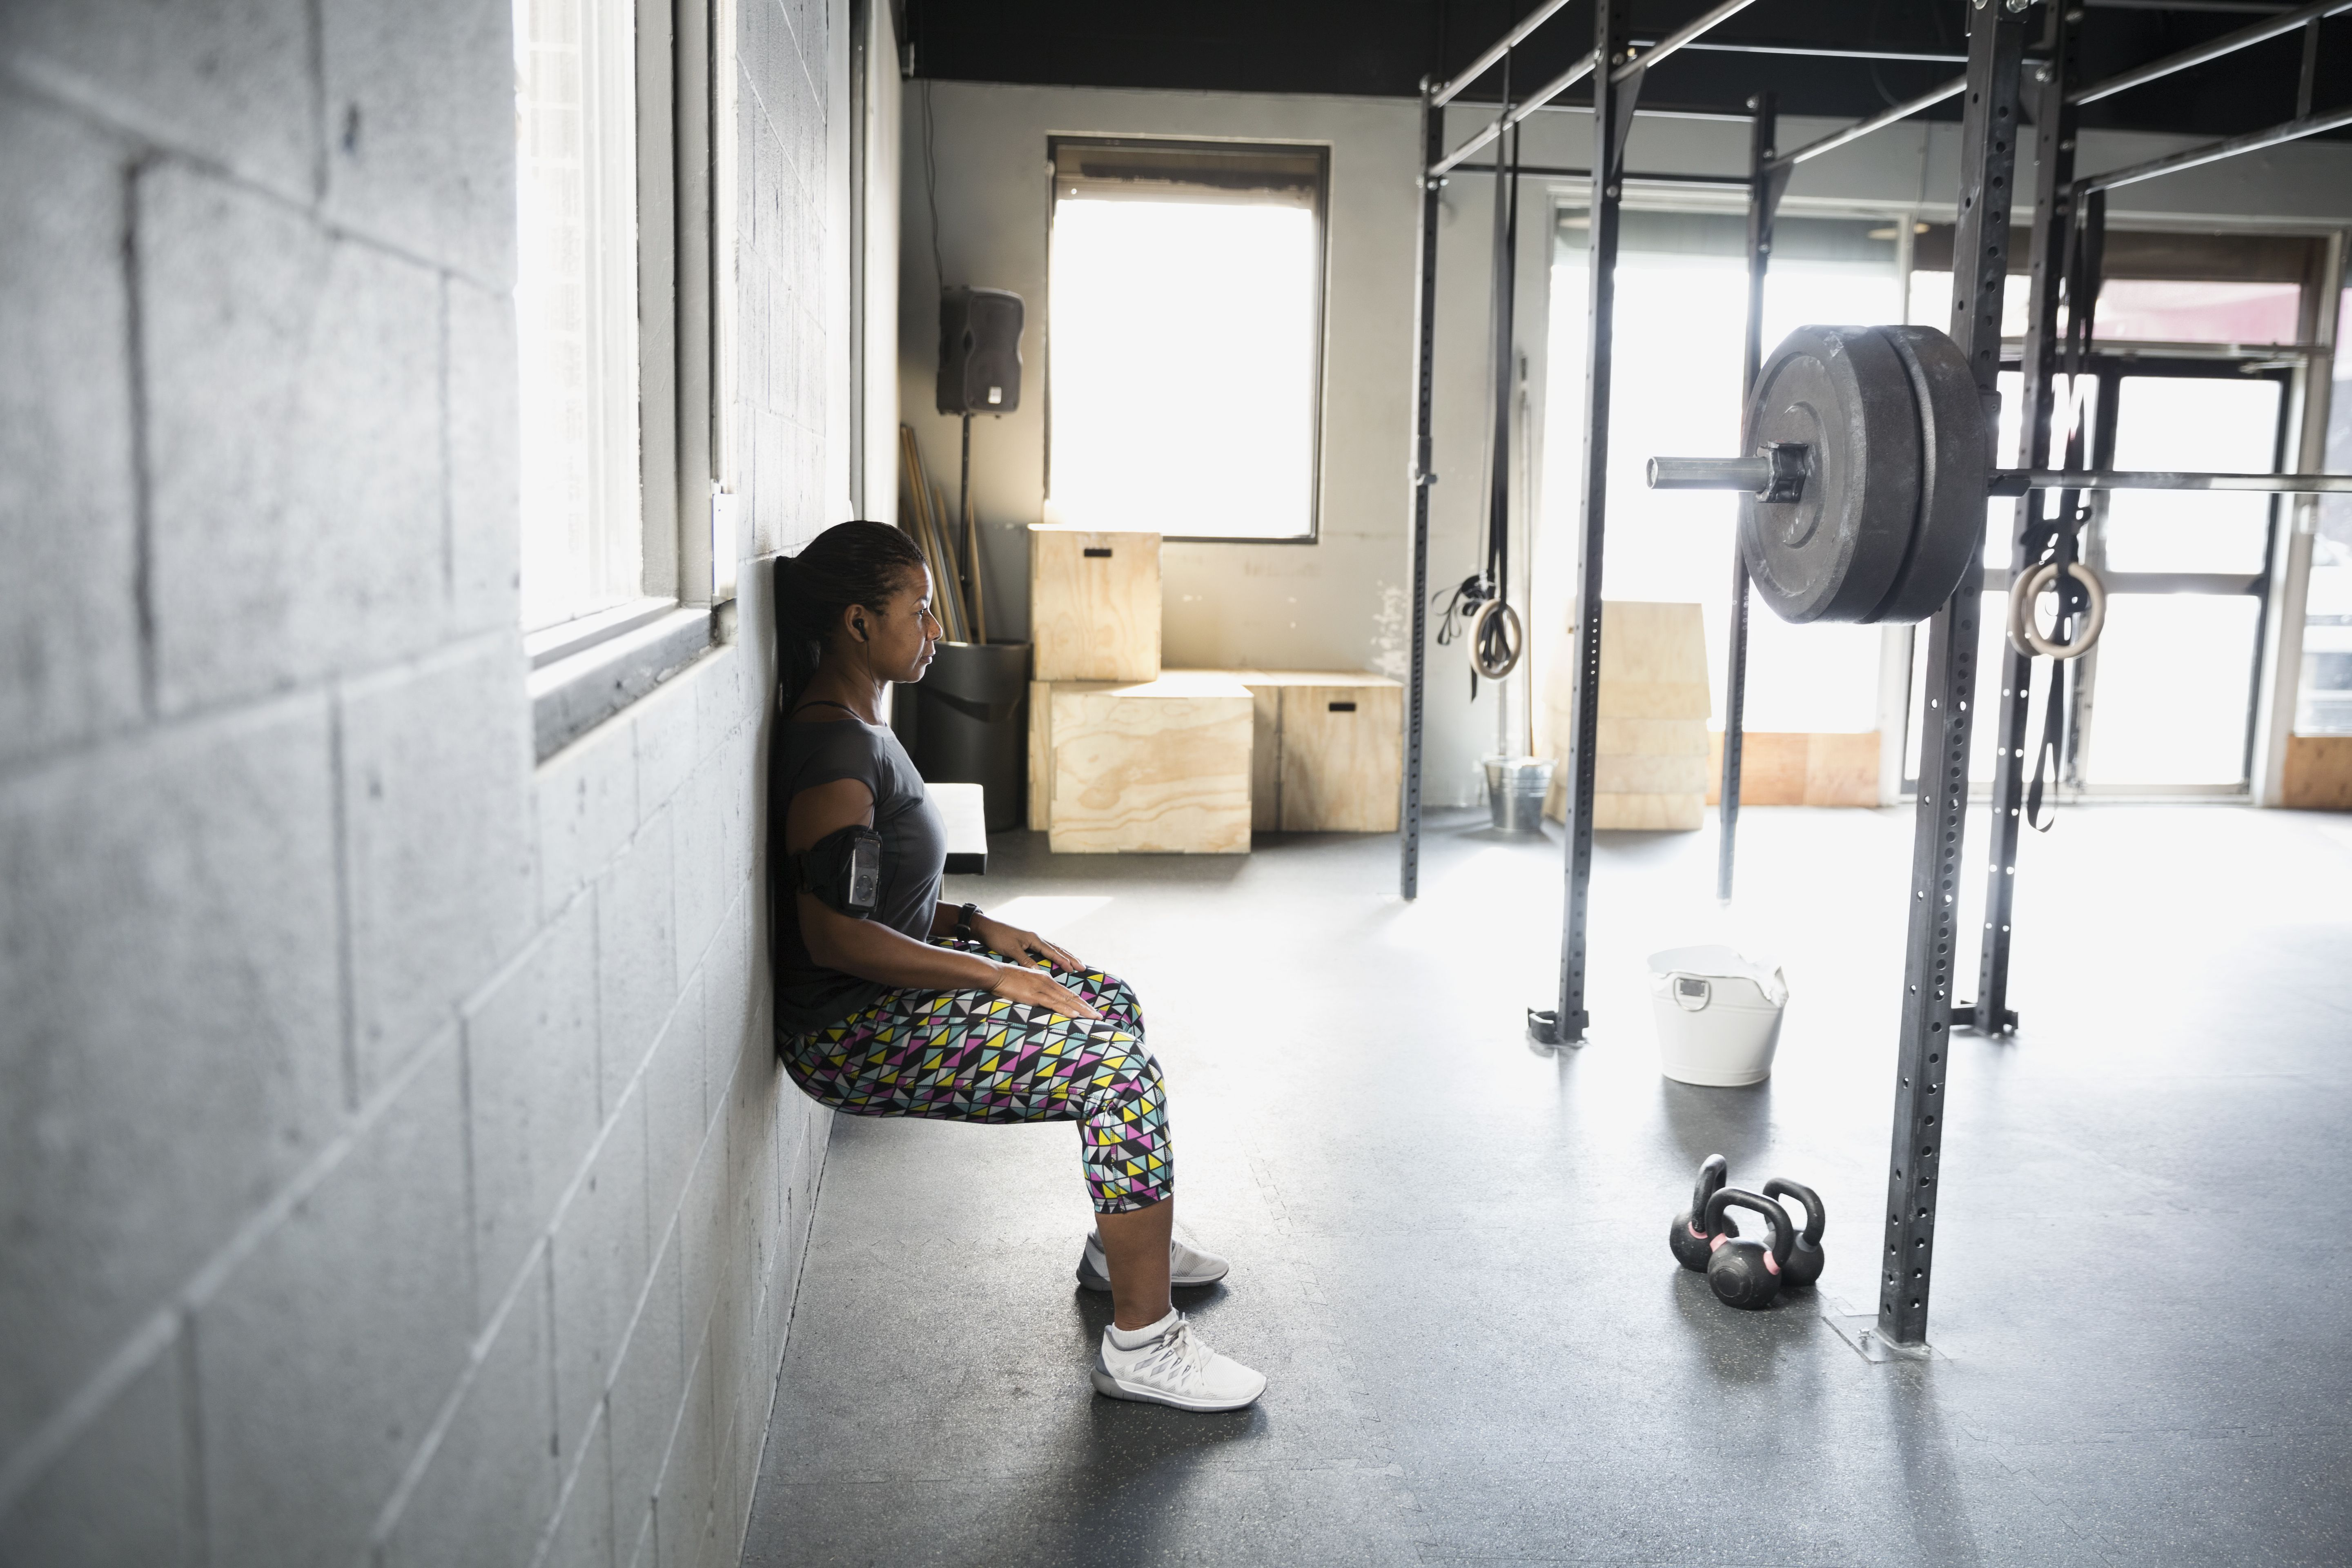 Squat Variations for the Buns, Hips, and Thighs